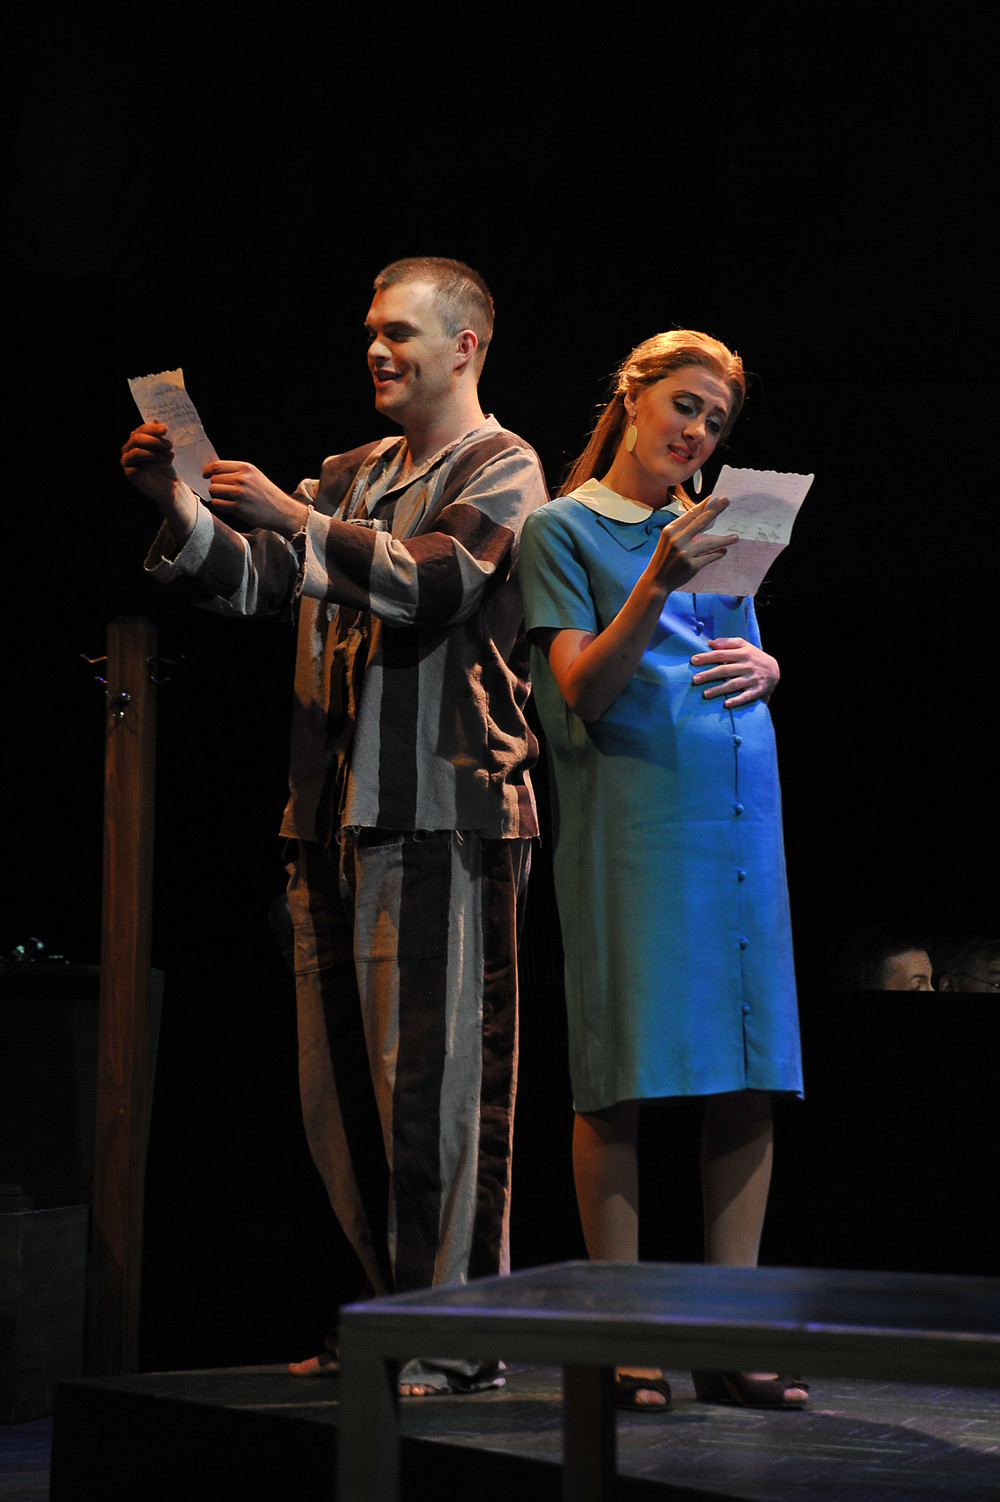 Young Thompson (David Blalock) and Young Alyce (Sydney Mancasola) reading a letter; photo by Ellen Appel.